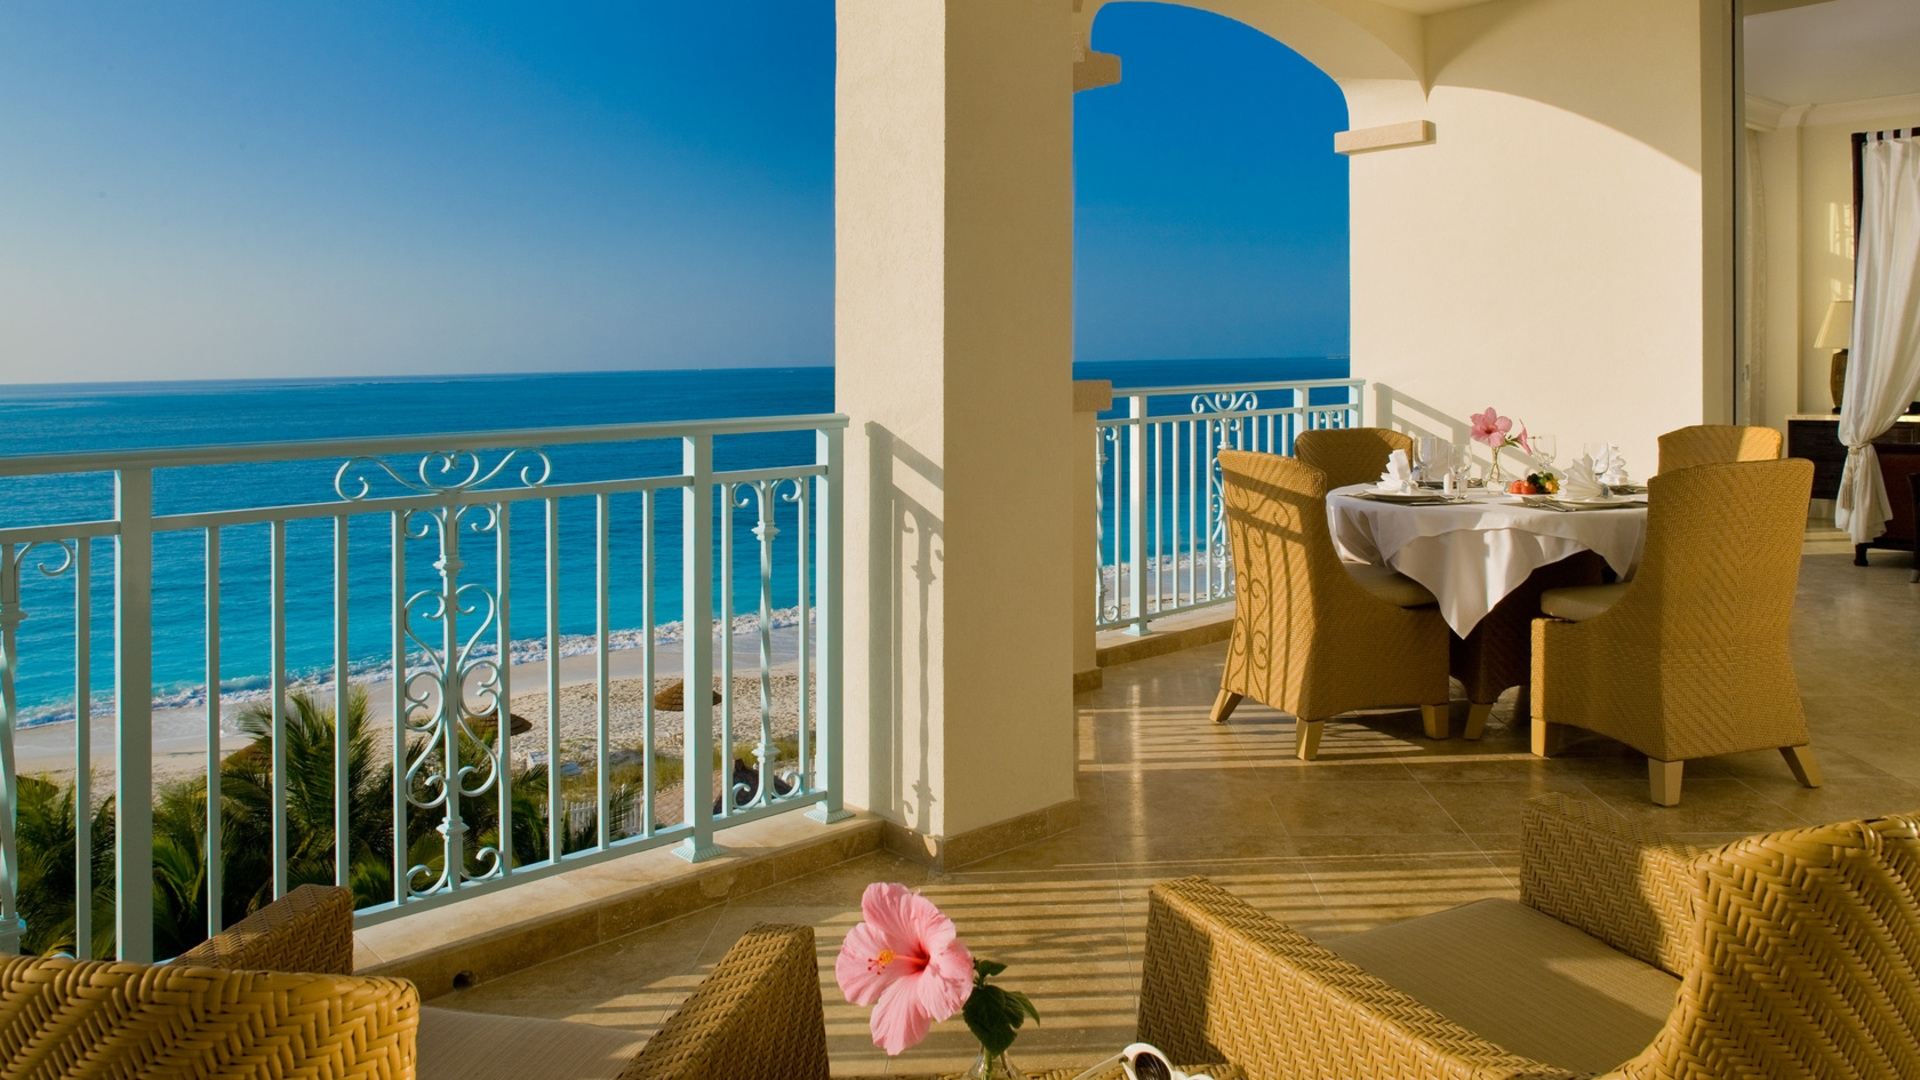 Sea beach terrace balcony view horizon hd wallpaper for Terrace balcony